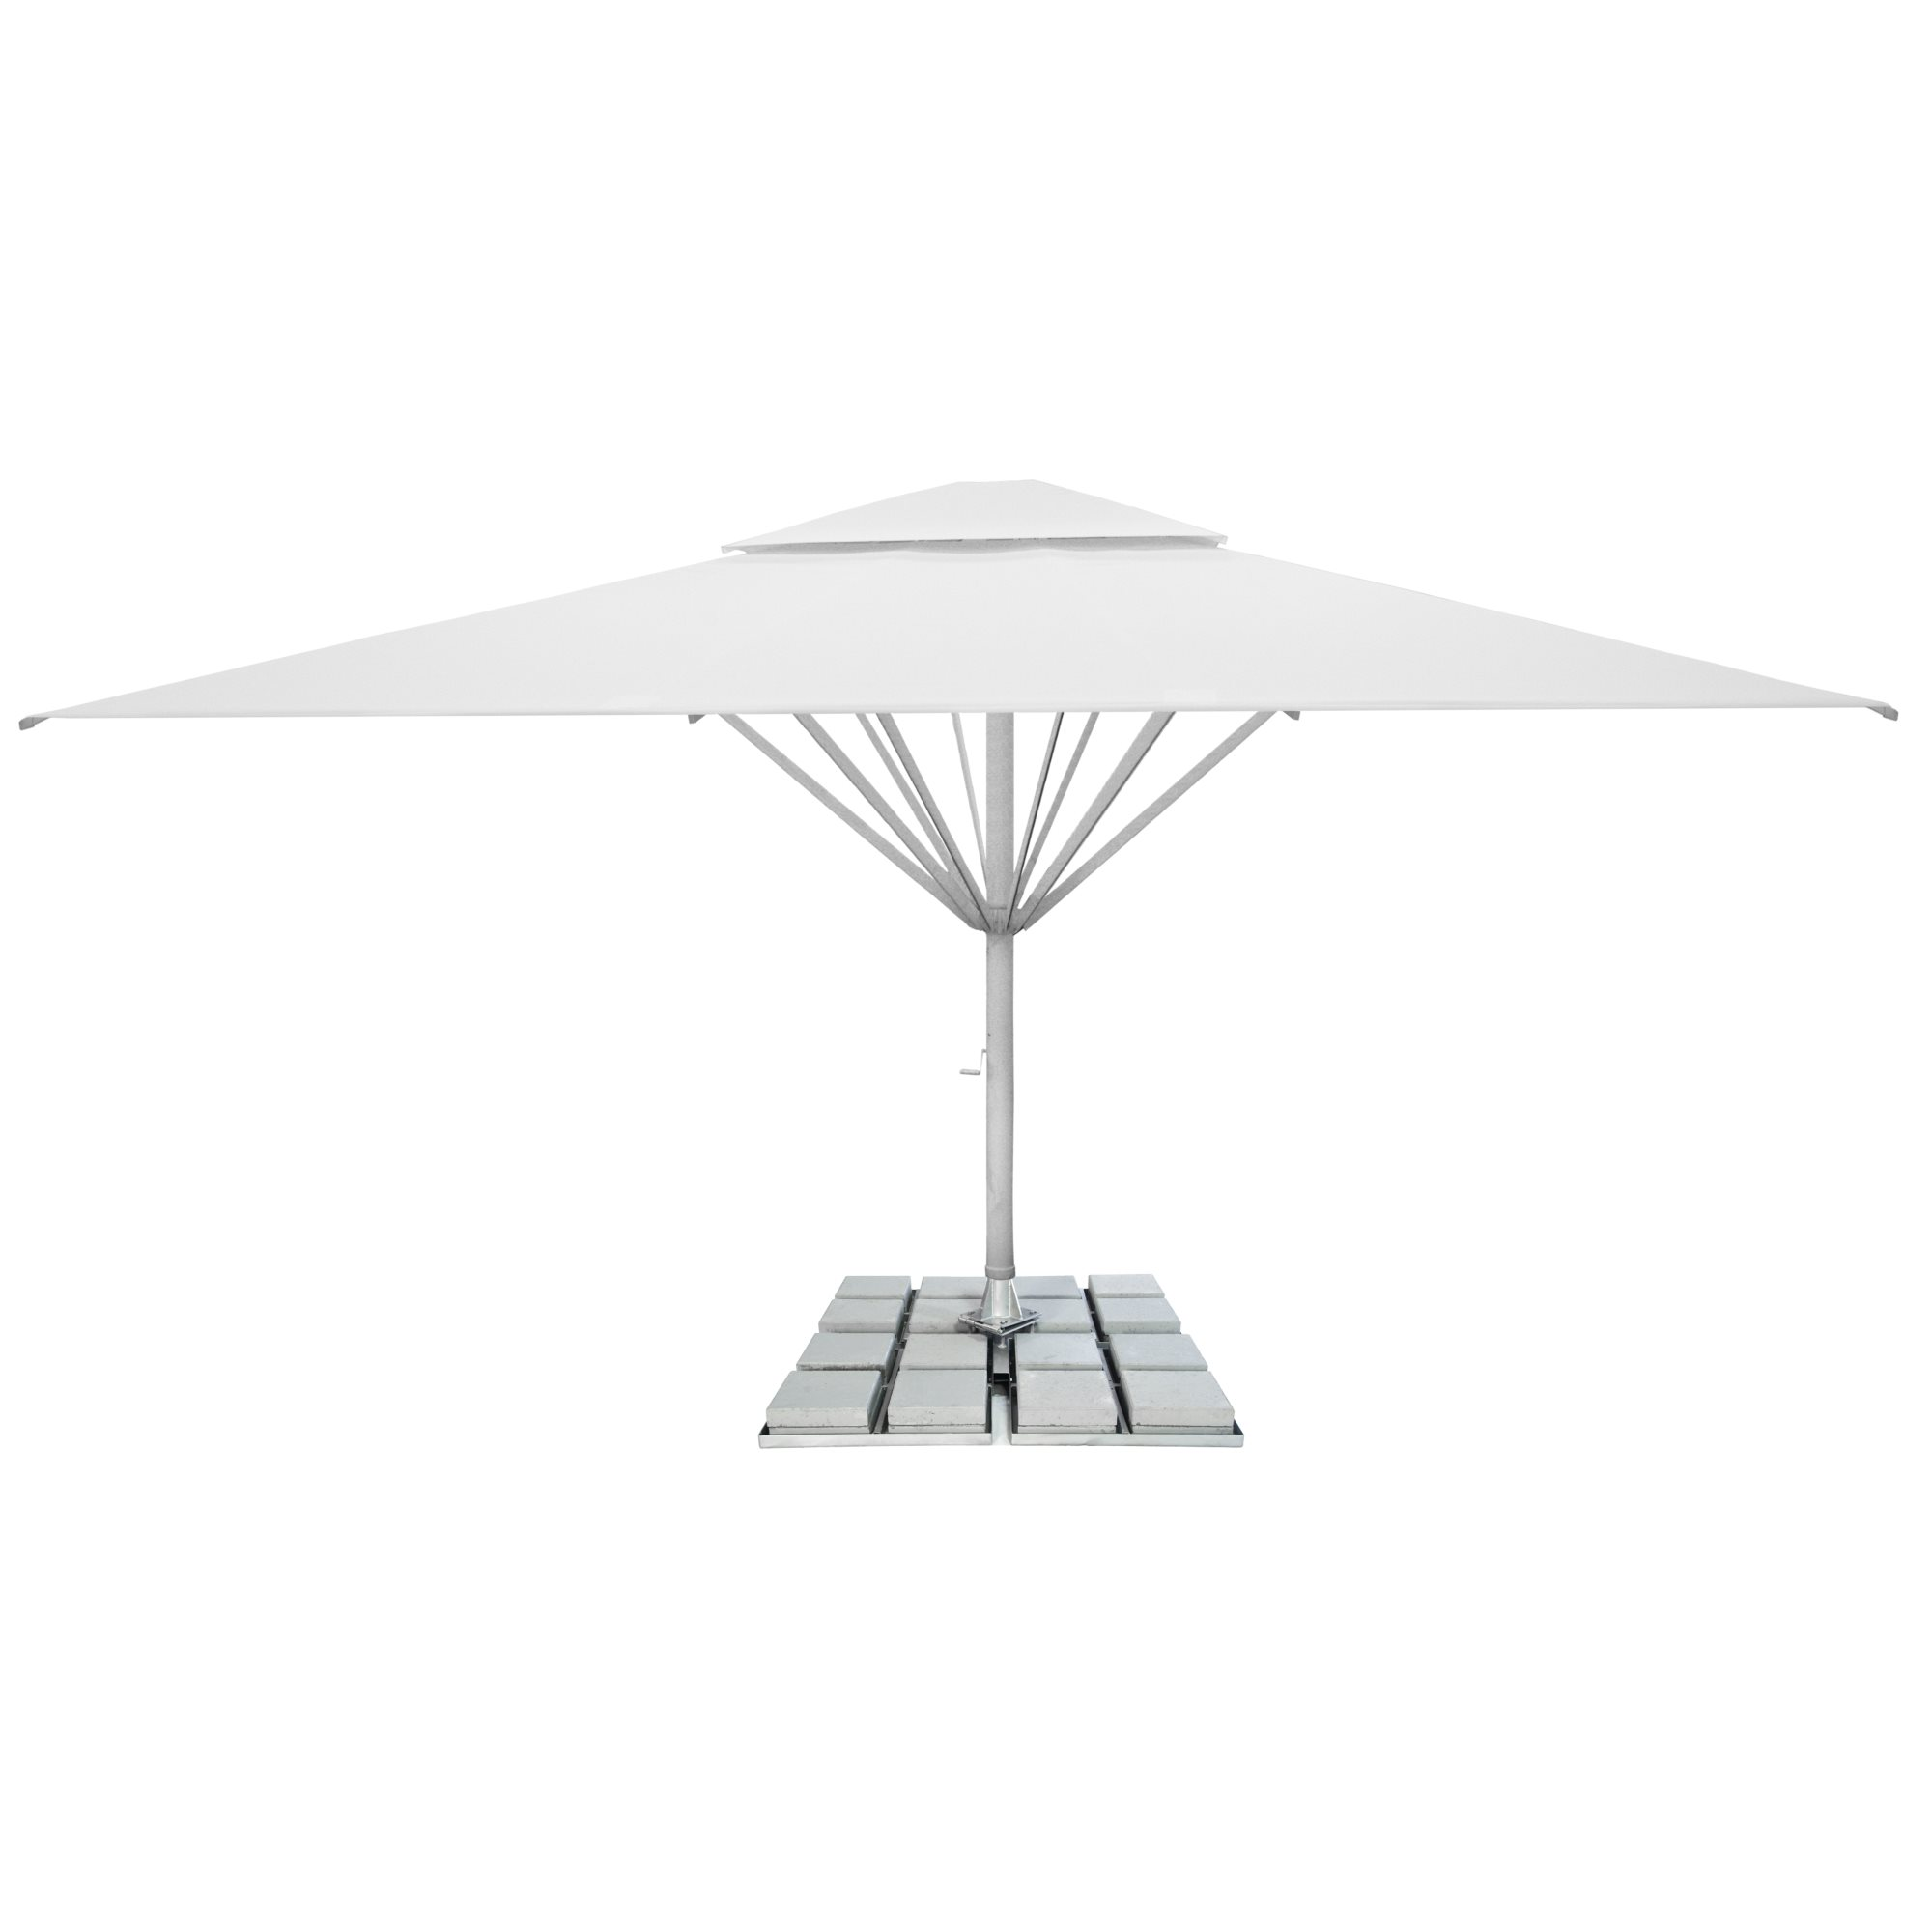 3. Giant Parasol Square 6m - with 2nd roof